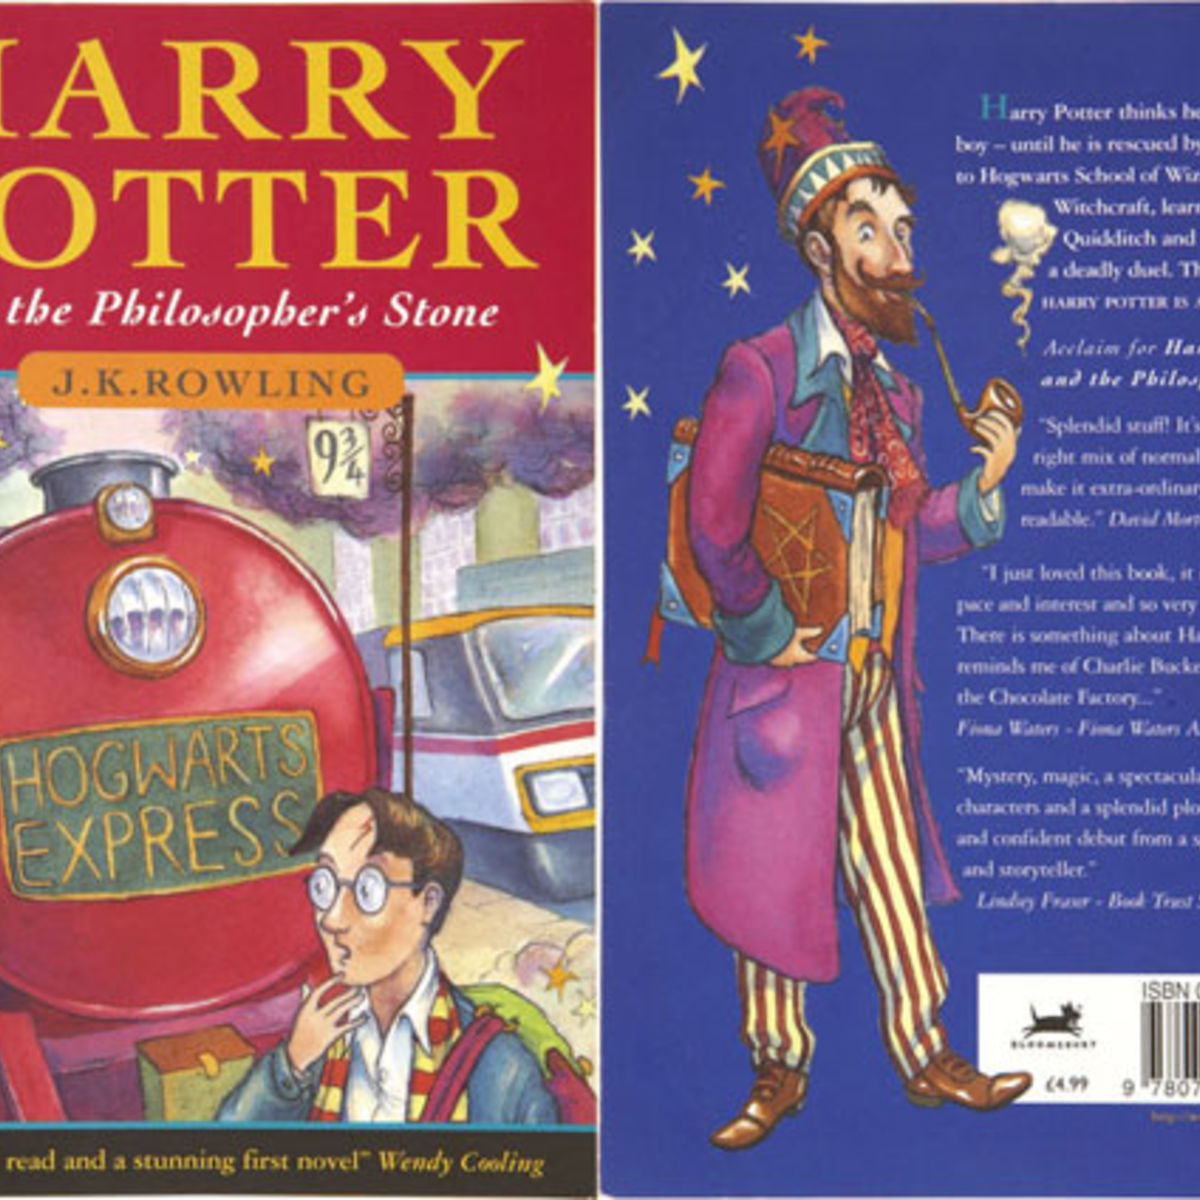 harrypottercovers.jpg